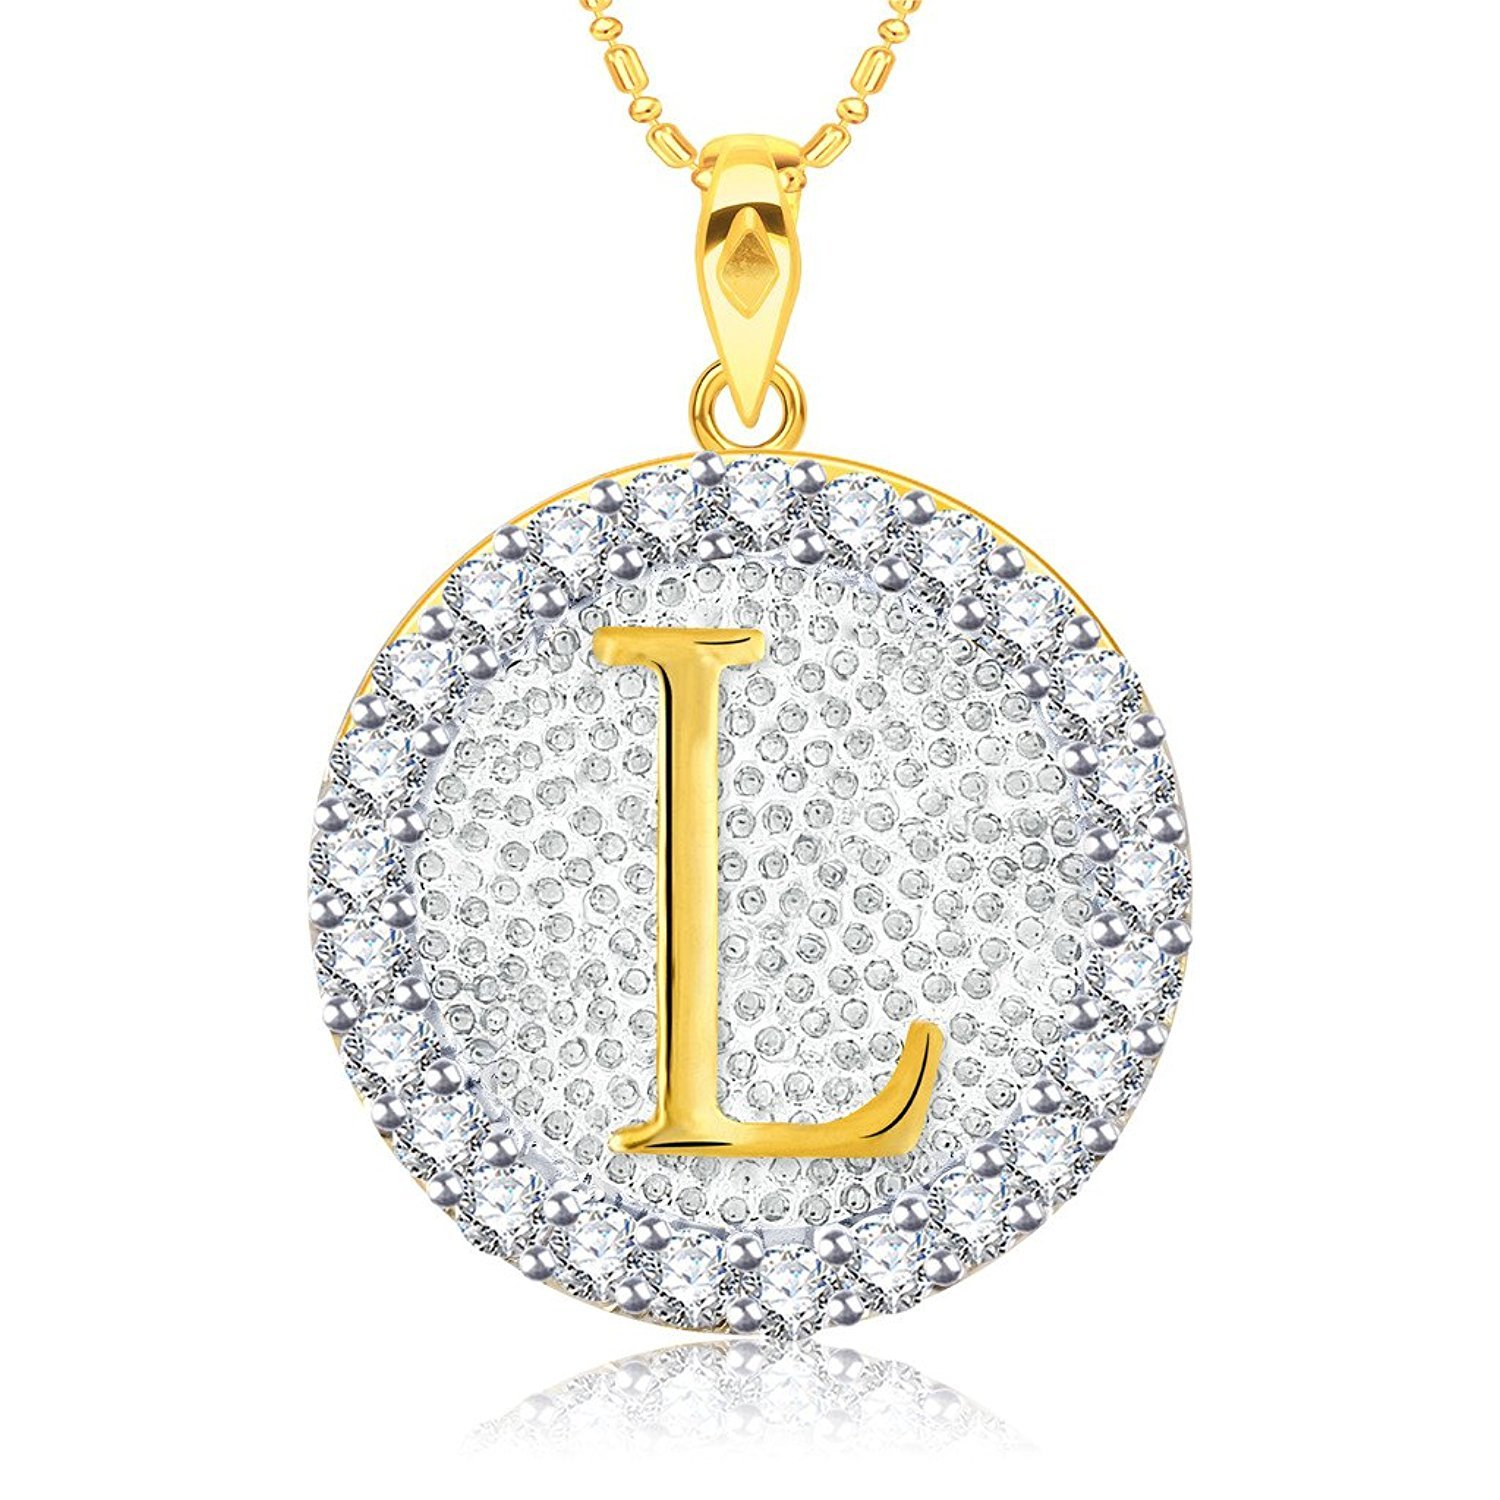 Simulated Diamond Studded Fashion Initial Alphabet Letter L Pendant Necklace in 14K Yellow Gold Plated With Box Chain